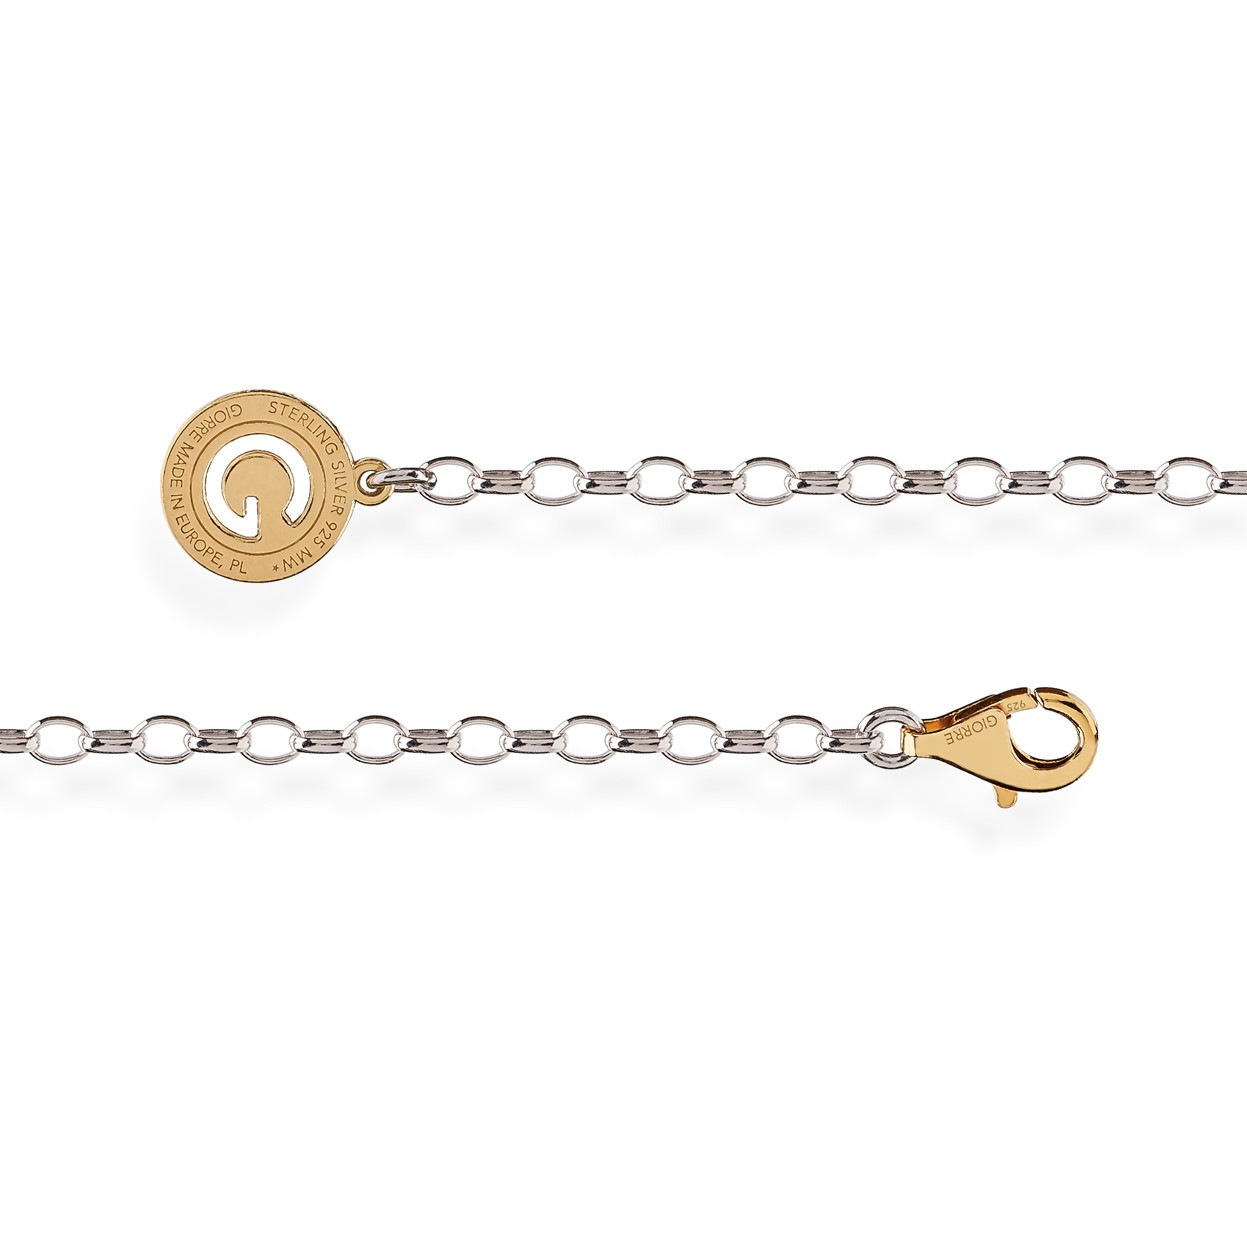 Sterling silver necklace 55-65 cm, yellow gold clasp, link 4x9 mm